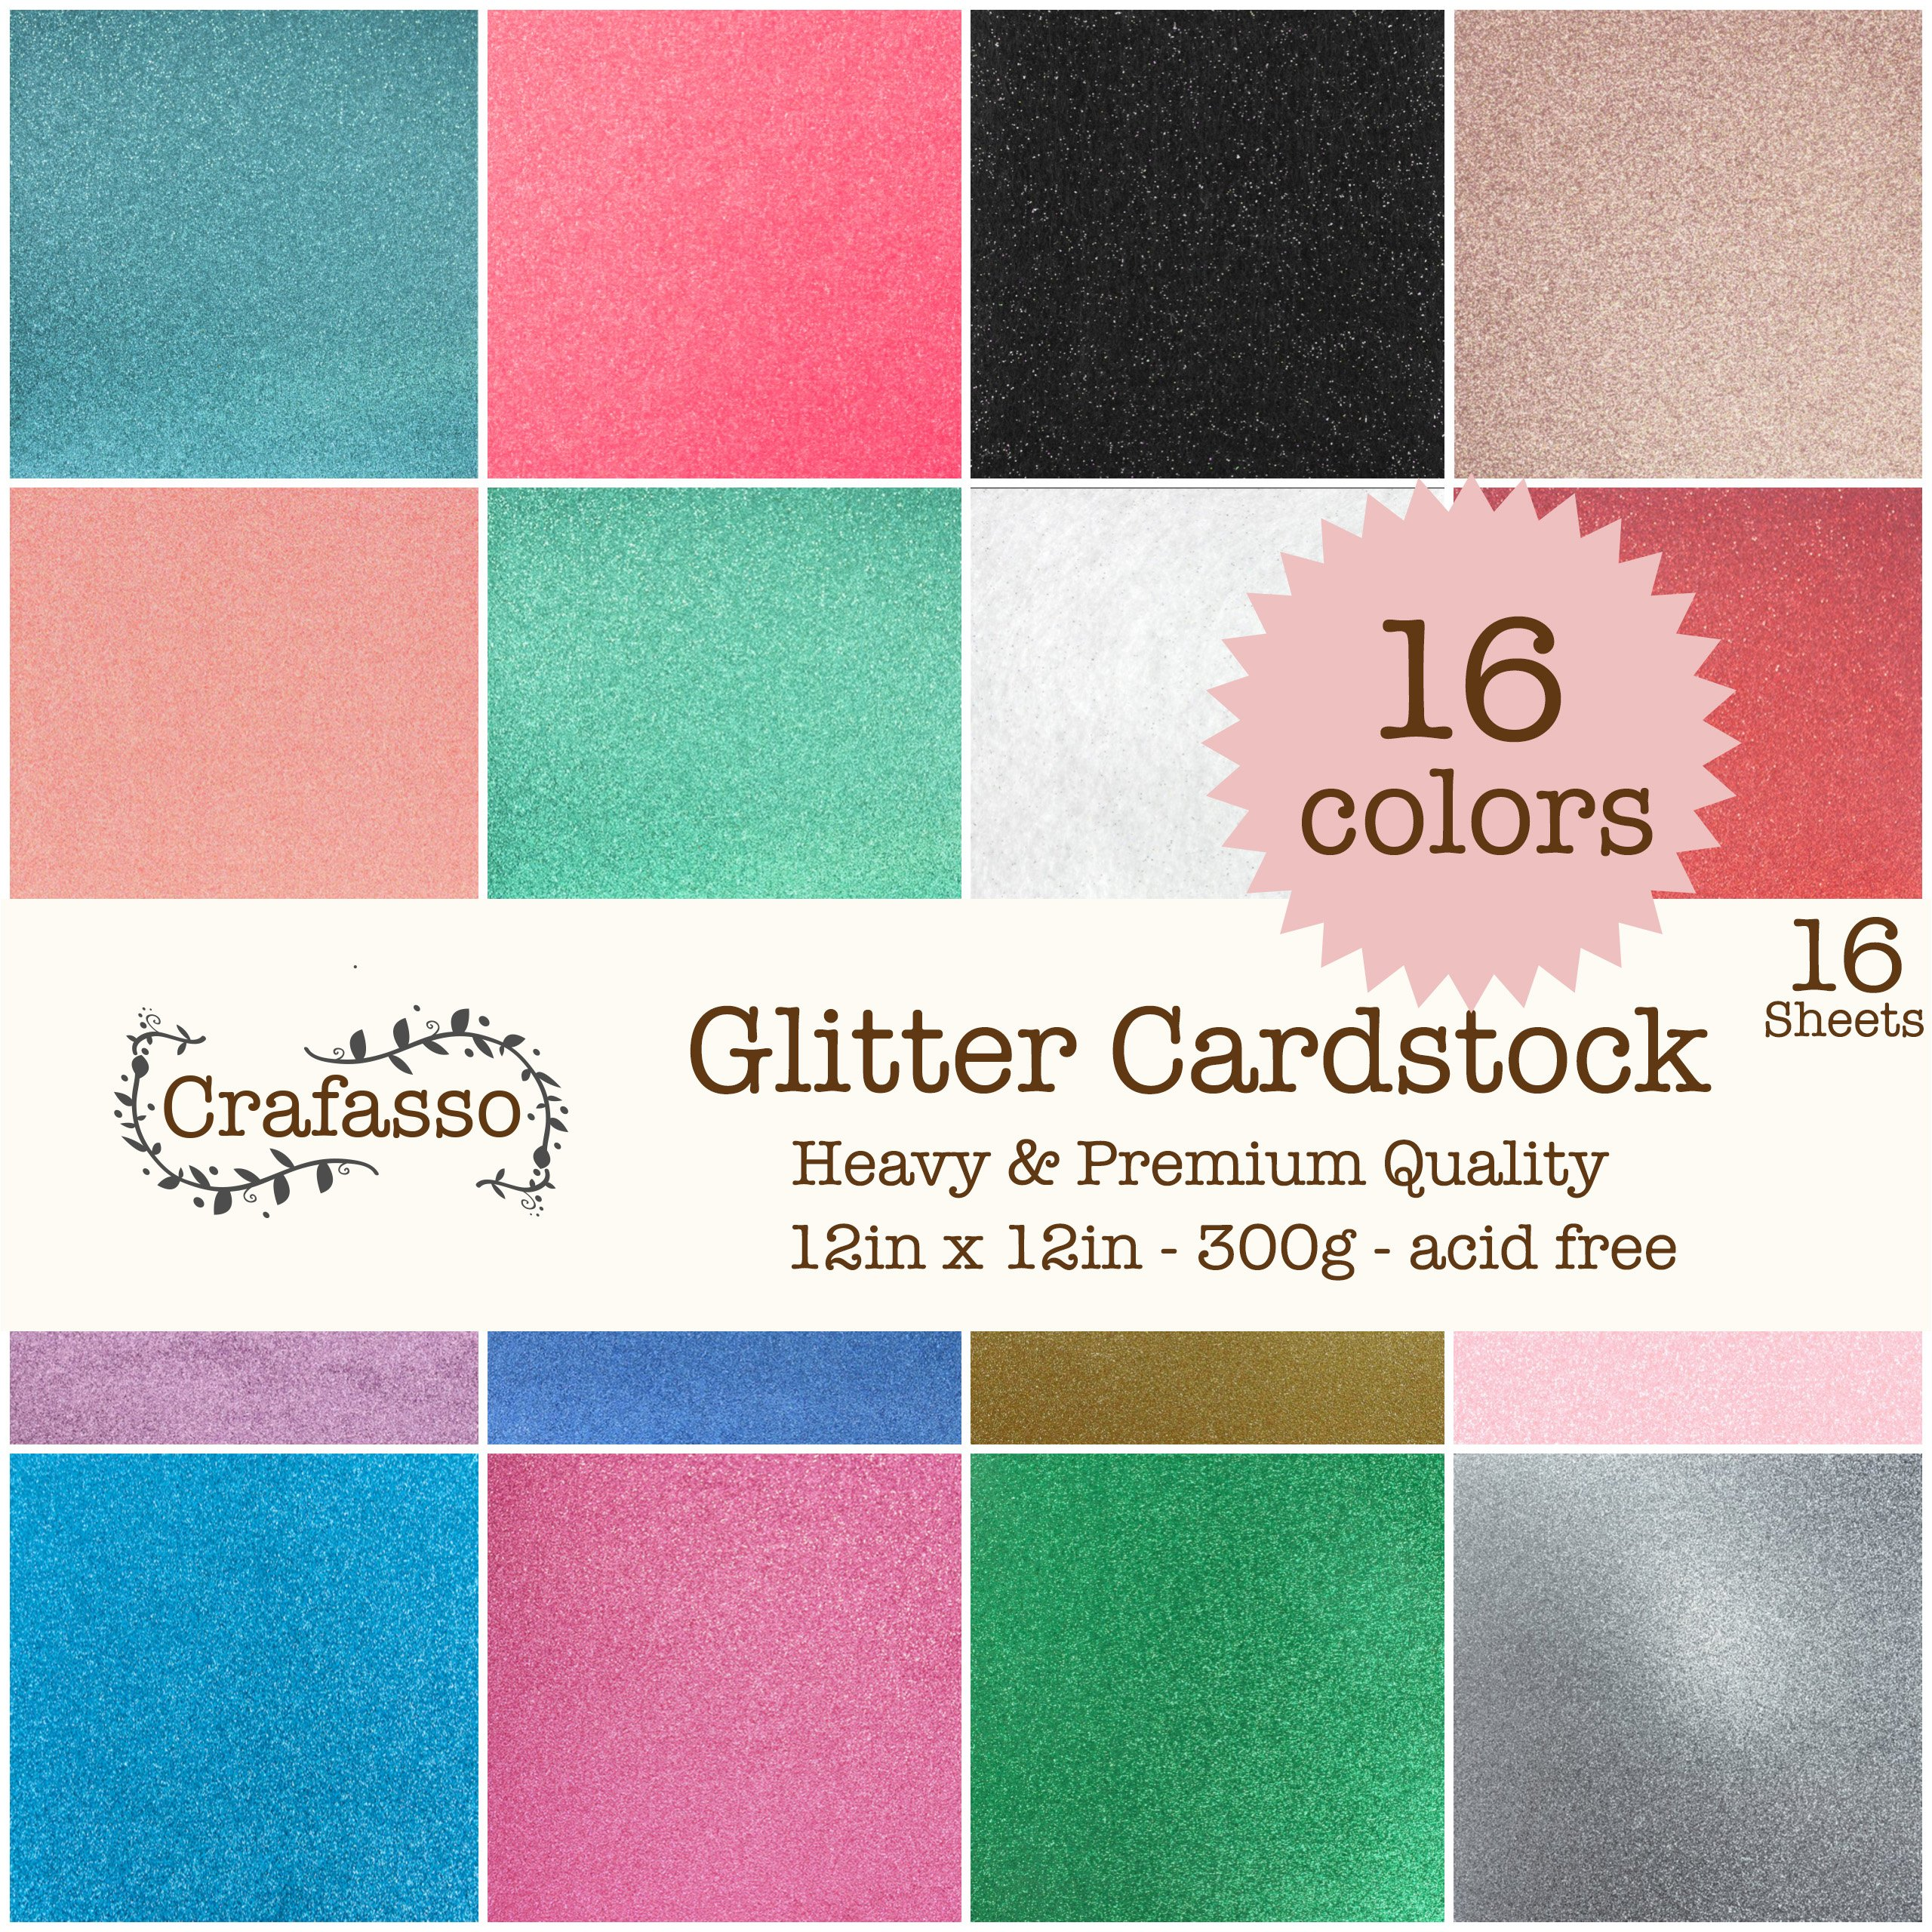 Crafasso 12'' x 12'' 300gms Heavy & Premium Glitter cardstock, 16 Sheets, 16 Colors by Crafasso